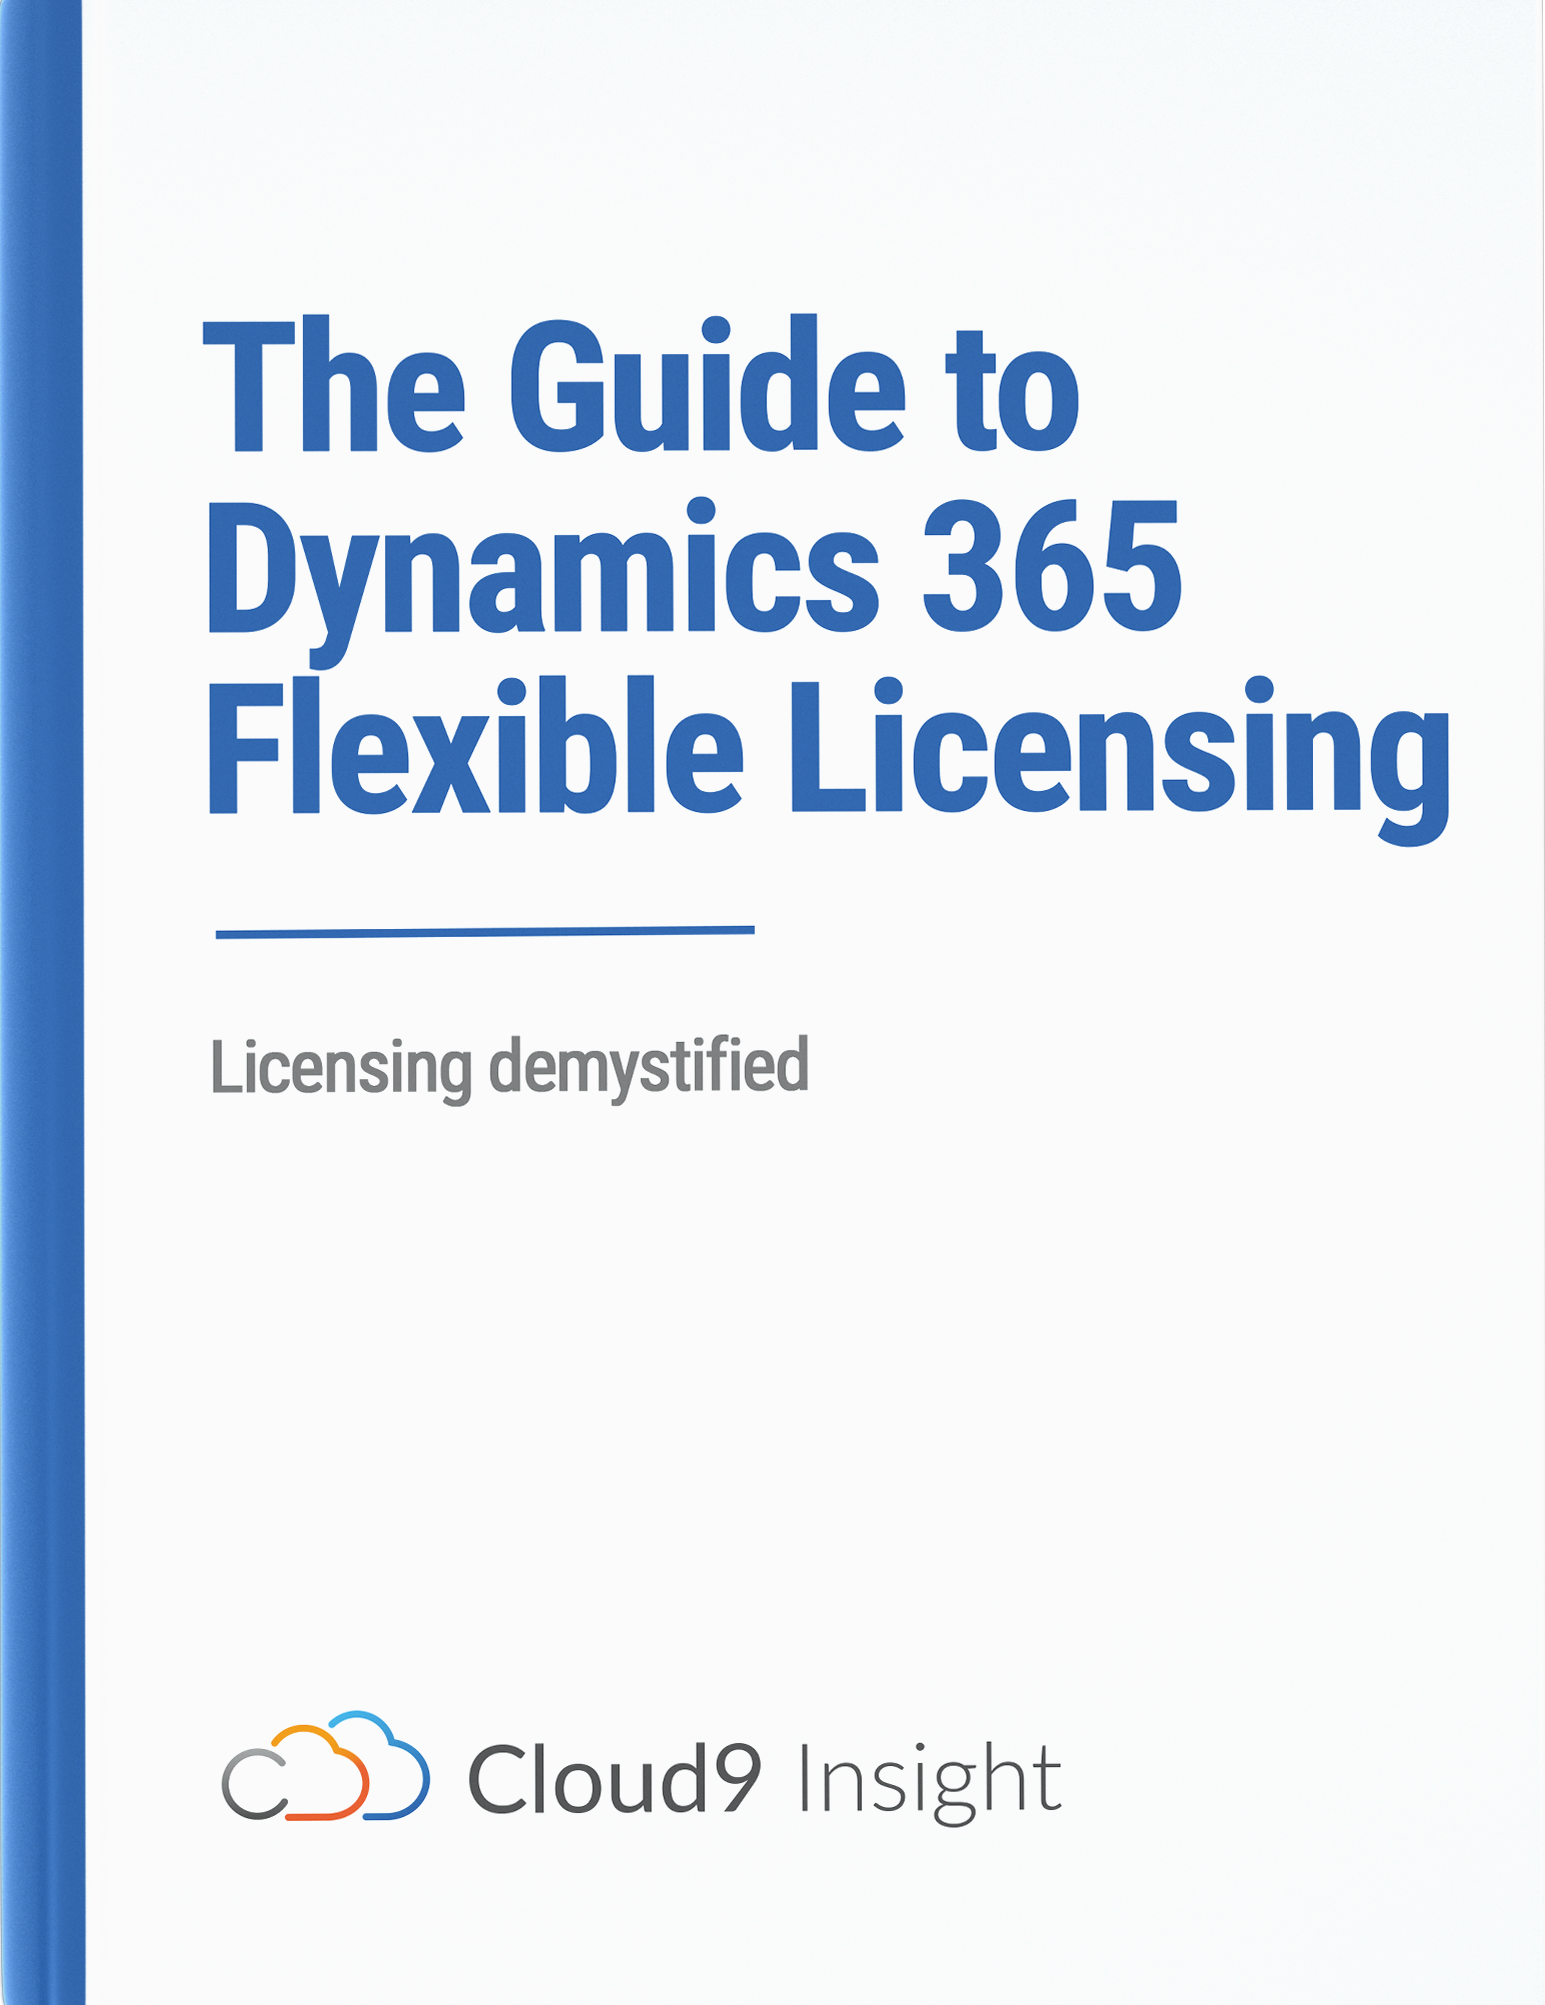 Microsoft Dynamics 365 LicensingThe Guide to Flexible licensing